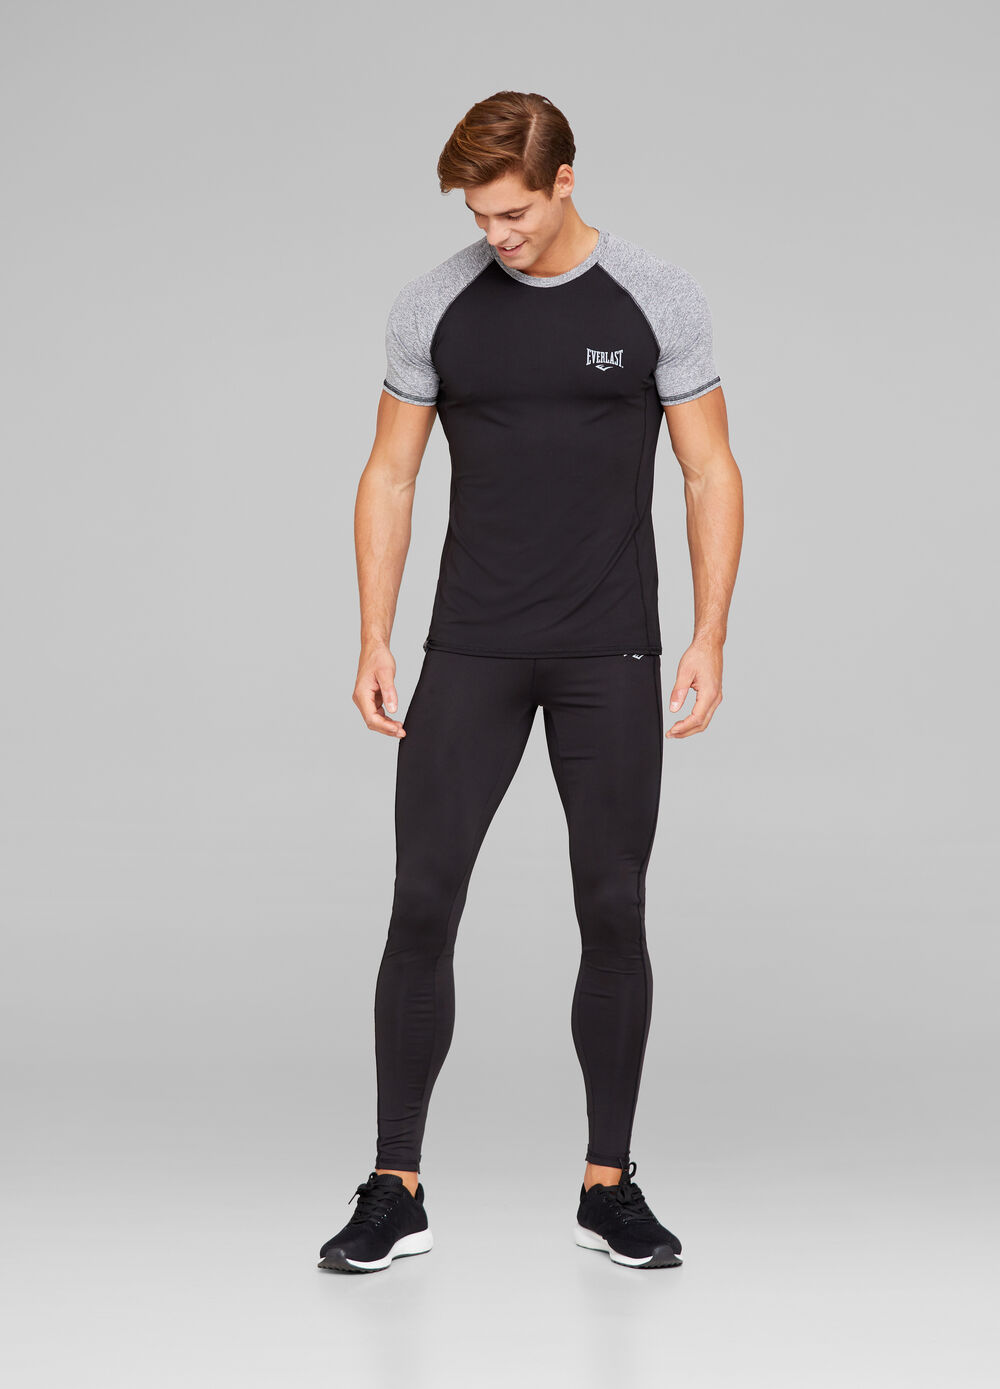 Everlast gym trousers with print